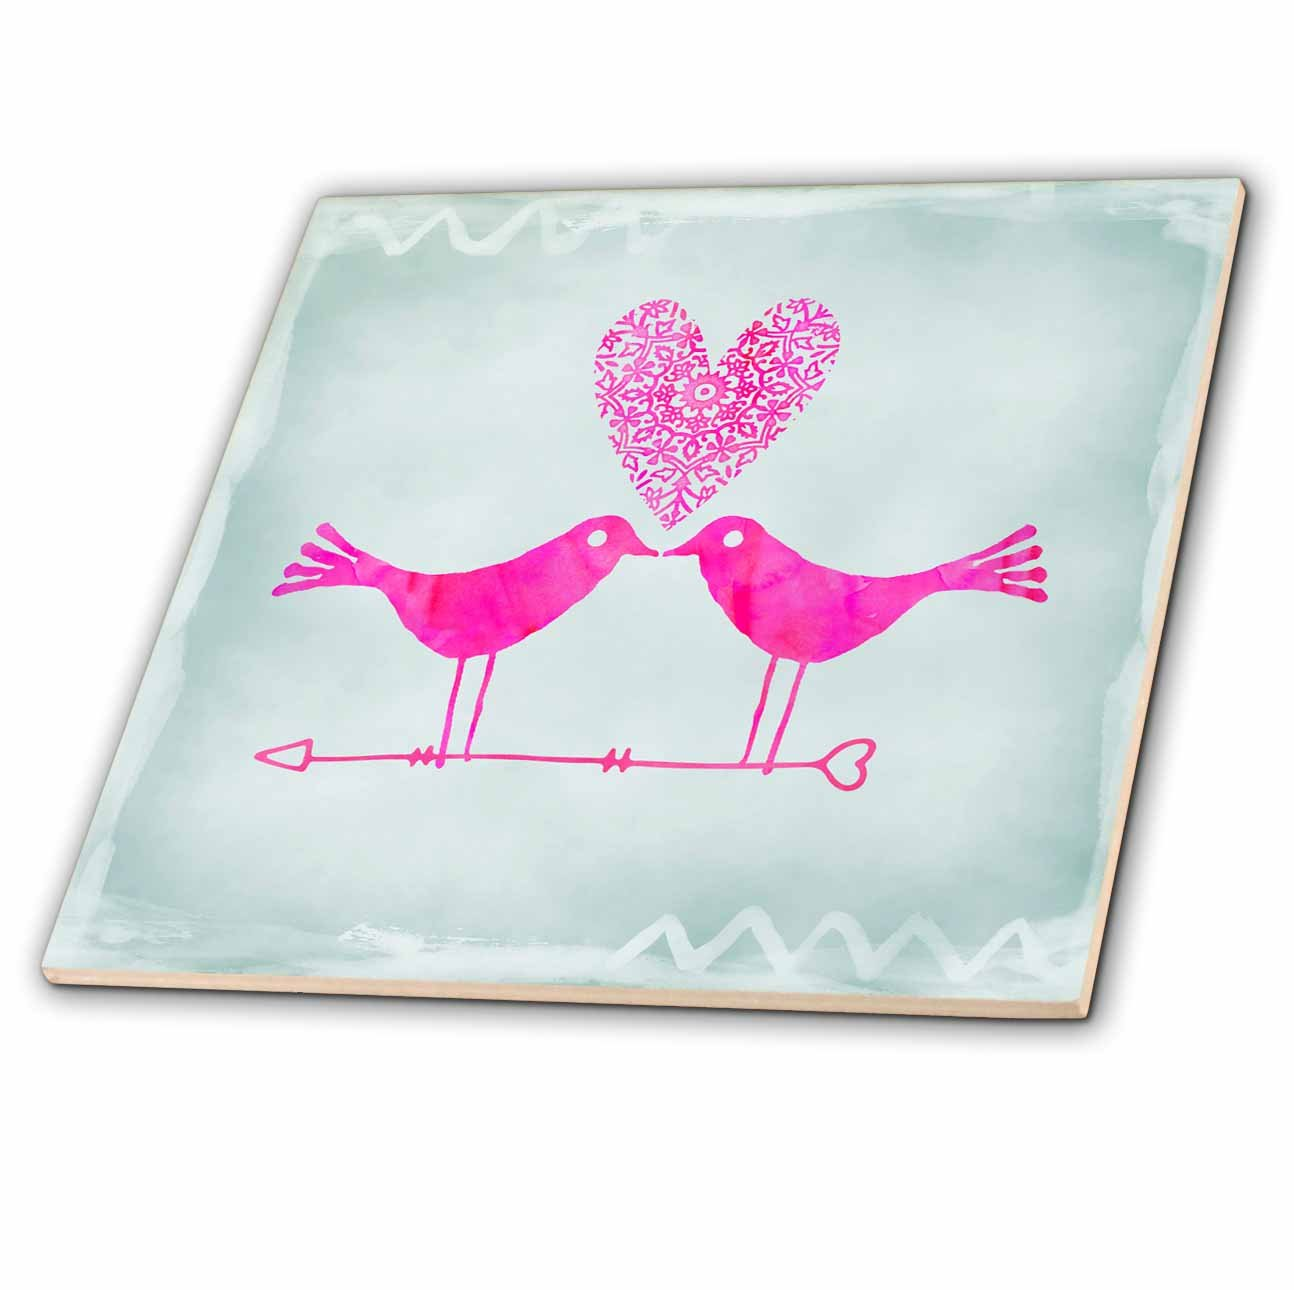 3dRose ct_282553_1 Pink Watercolor Love Birds On Grey Ceramic Tiles,